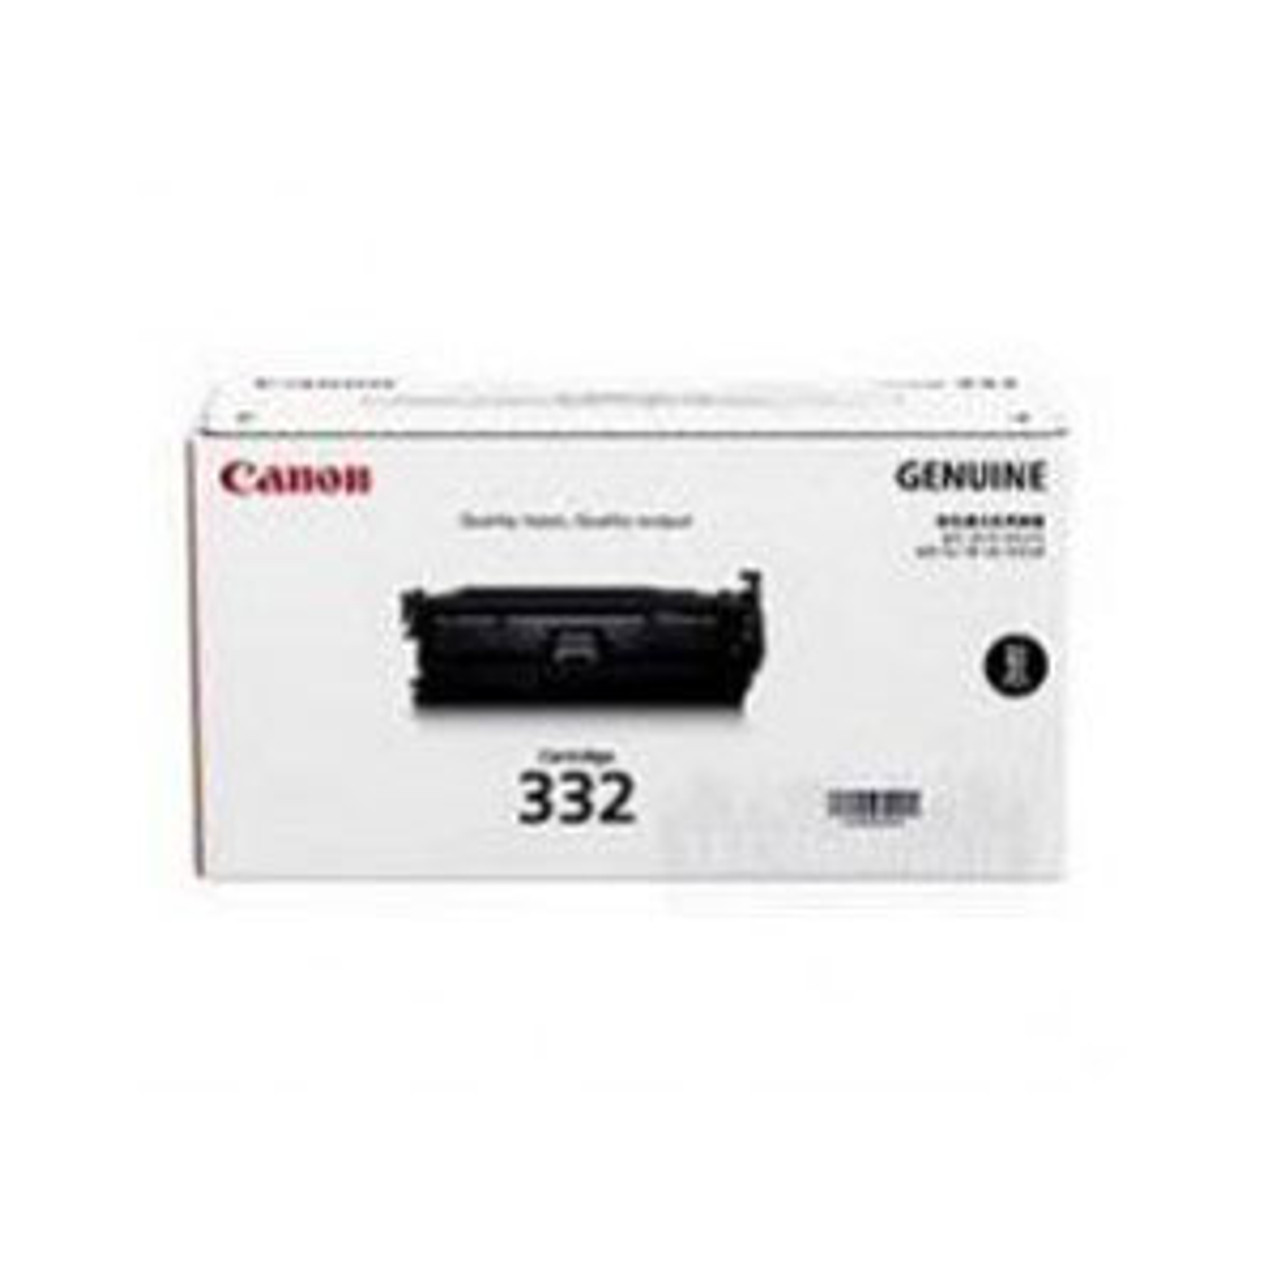 Image for Canon 332 Black Toner Cartridge 6100 pages Black CX Computer Superstore